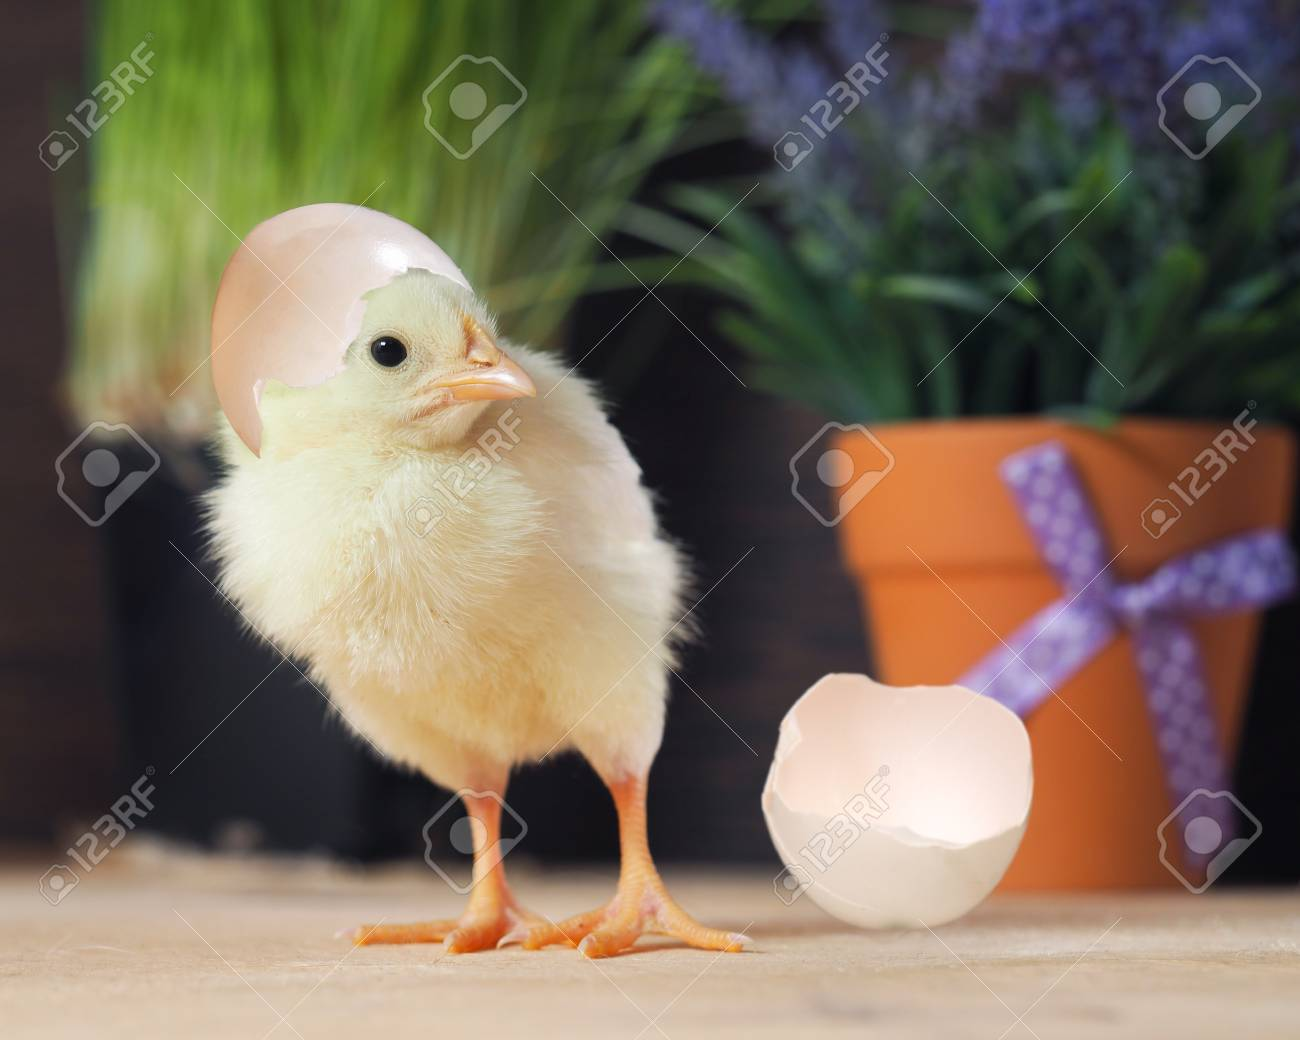 the newly hatched chick and egg shell the background flowers